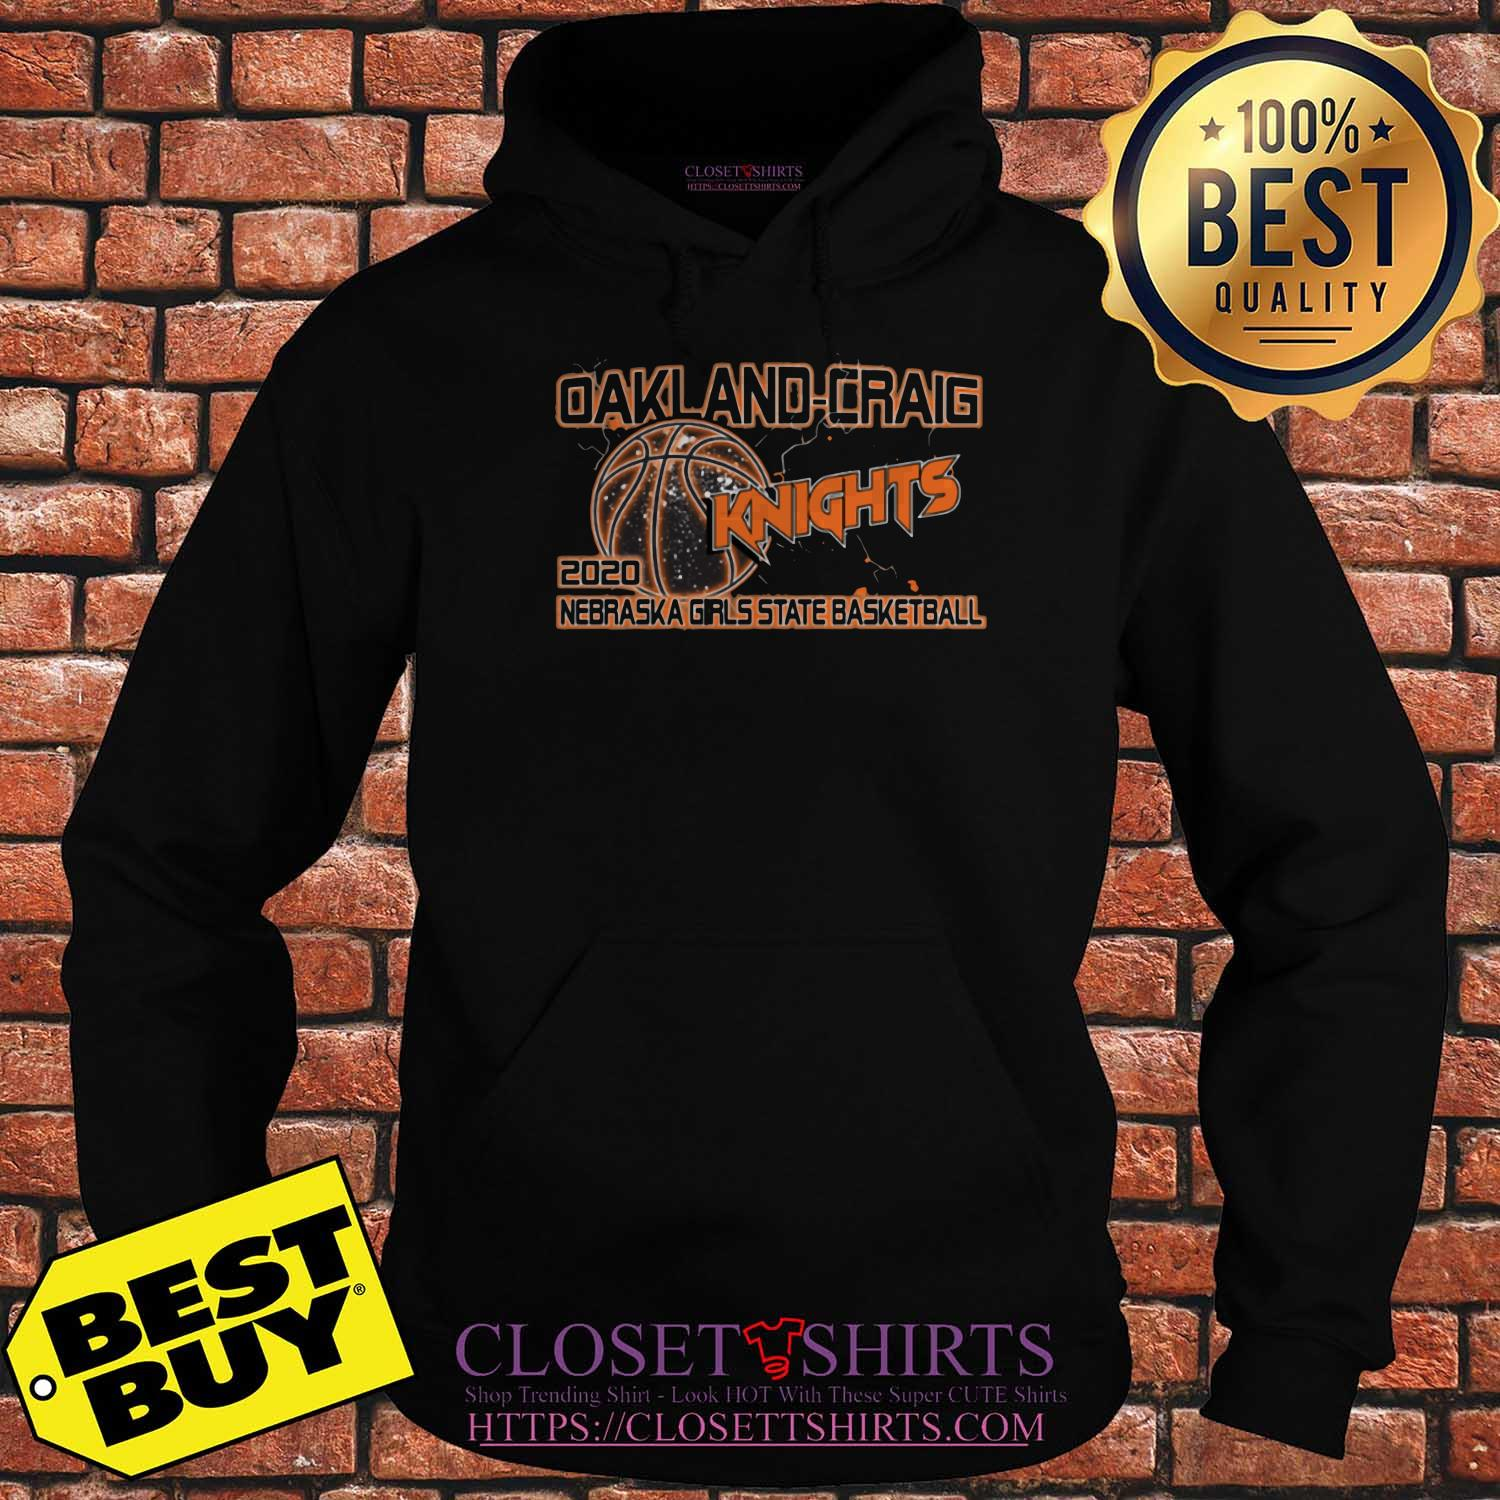 Oakland Craig Knight 2020 Nebraska Girls State Basketball Hoodies